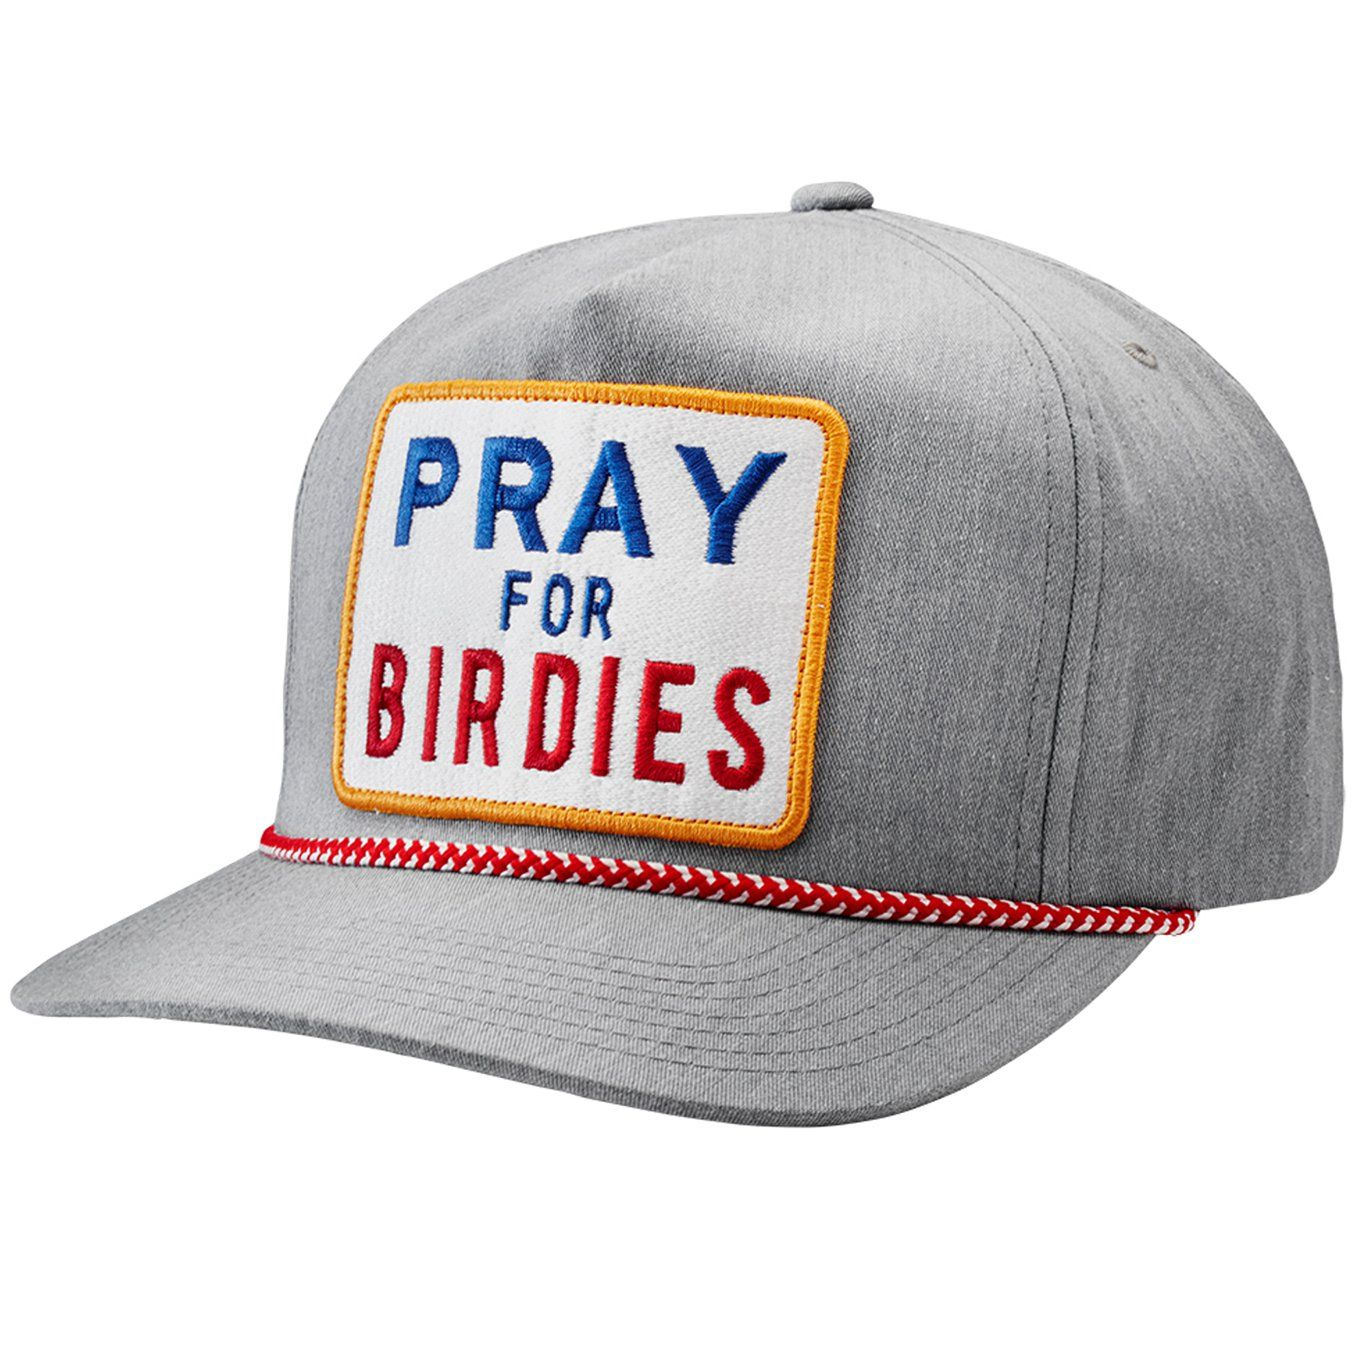 G FORE s Pray For Birdies Cap is crafted from poly cotton twill fabric    mesh bb411388fff